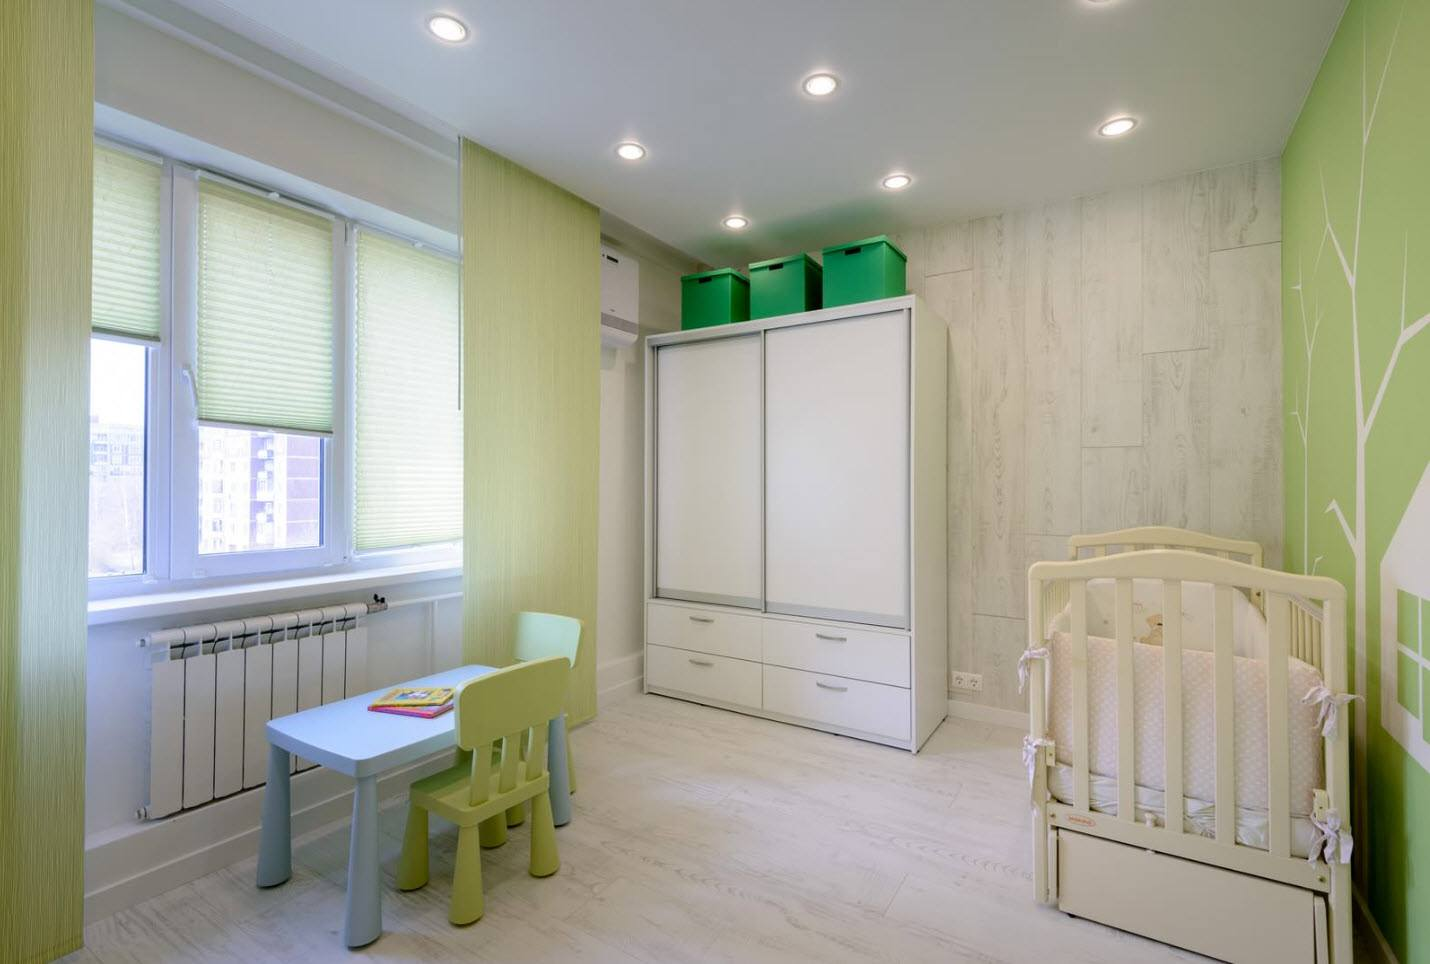 Small children's room for teenager with LED lighting, wooden furniture and green roller blinds